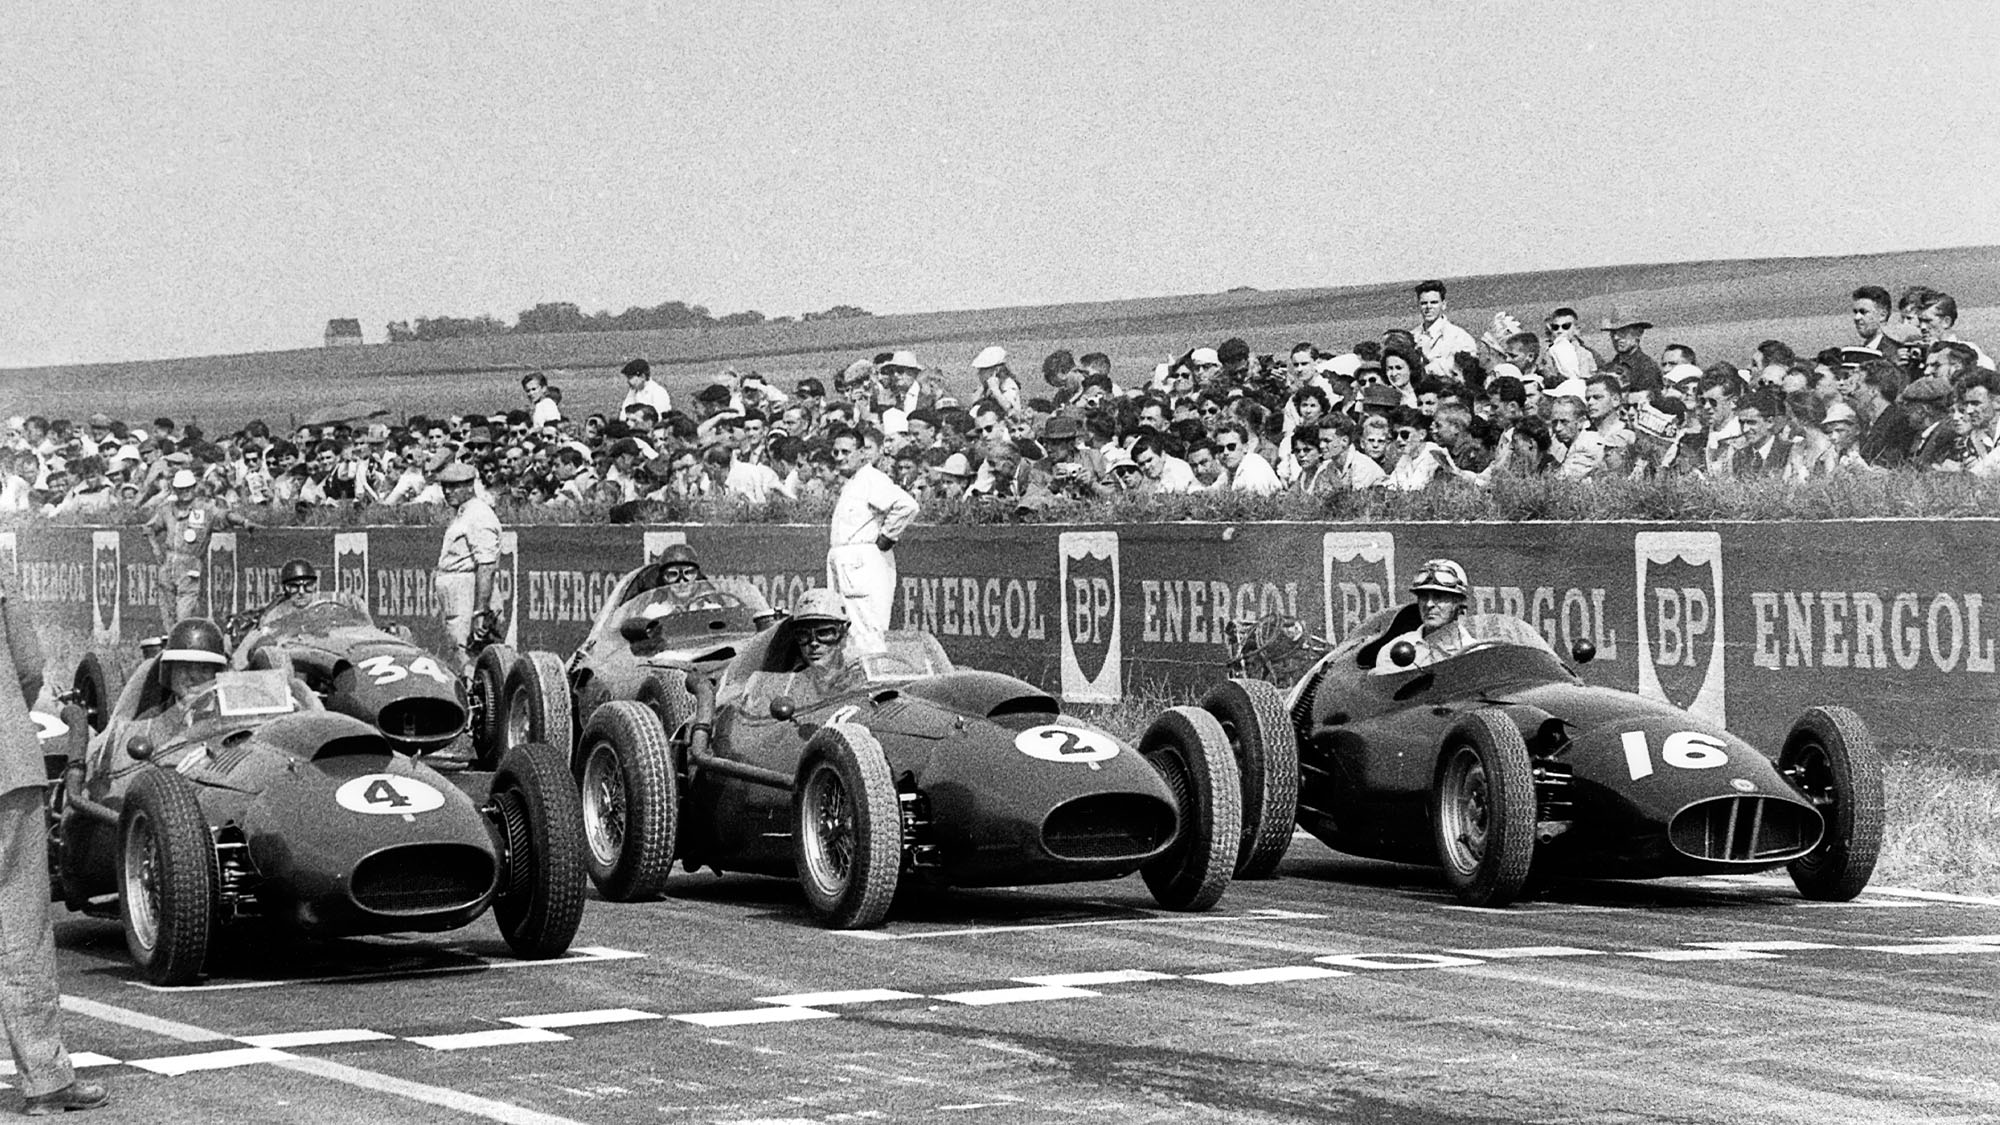 Mike Hawthorn, Luigi Musso, Harry Schell, Ferrari Dino 246, BRM P25, Grand Prix of France, Reims, 06 July 1958. (Photo by Bernard Cahier/Getty Images)